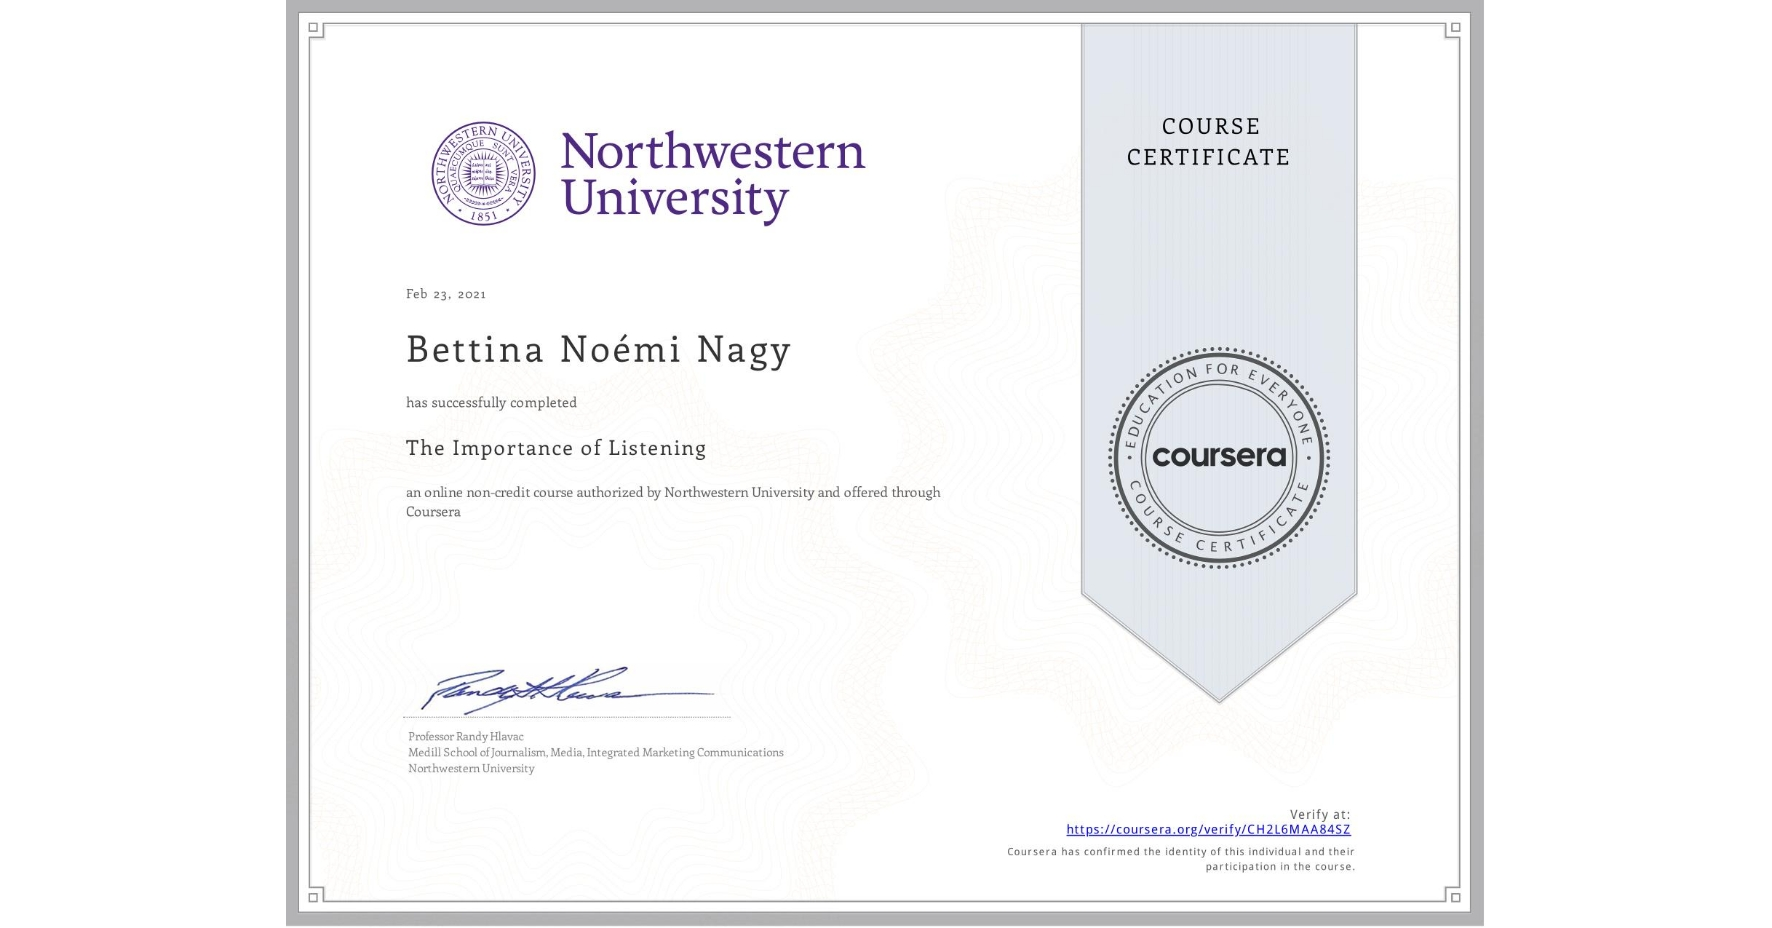 View certificate for Bettina Noémi Nagy, The Importance of Listening, an online non-credit course authorized by Northwestern University and offered through Coursera